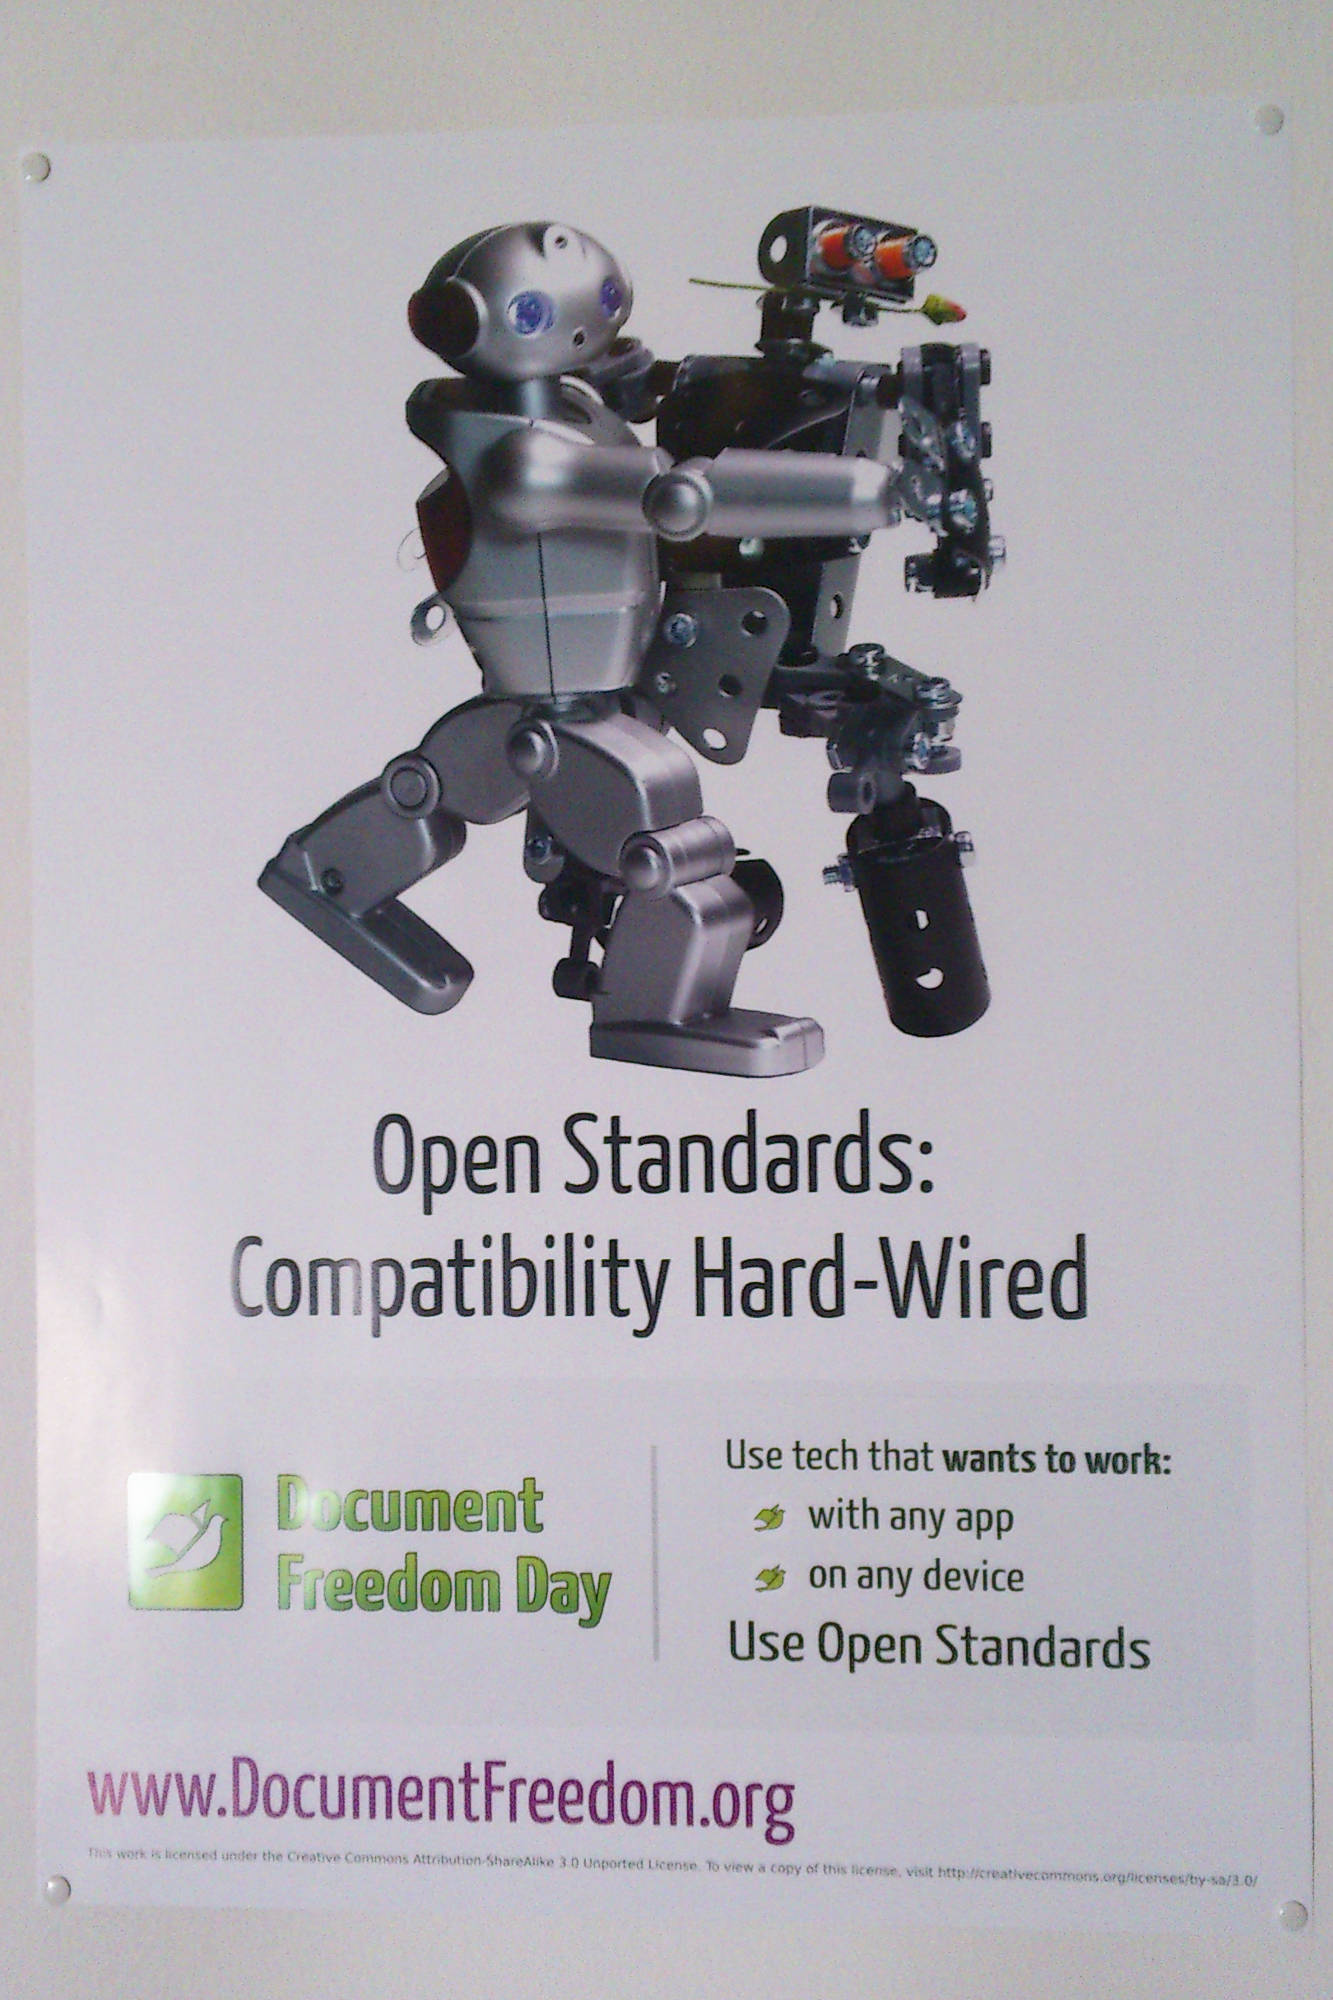 Open Standards: Compatibility Hard-Wired